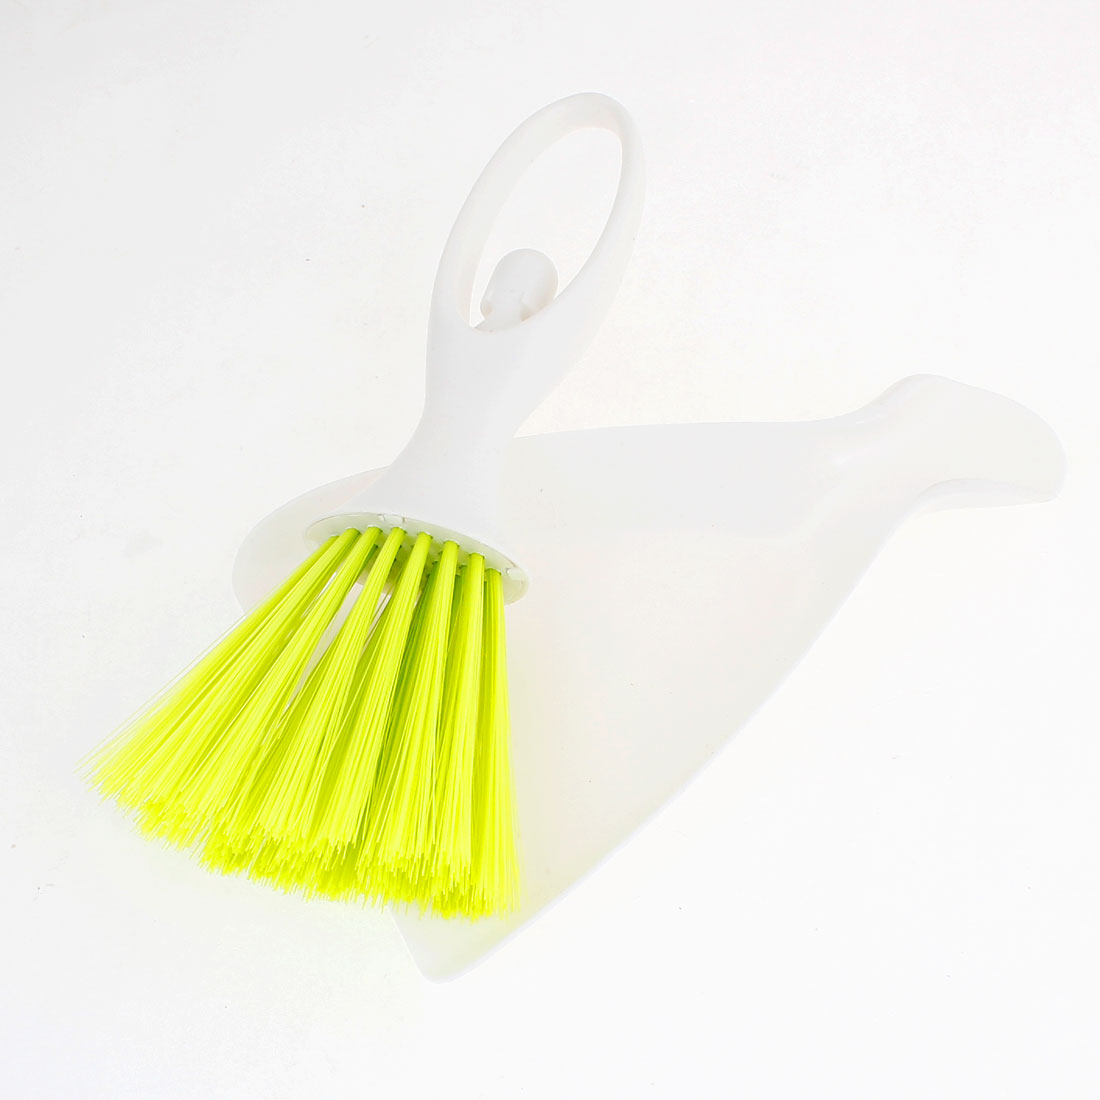 Vehicle Car Dashboard Air Flow Vent Brush Cleaning Tool White Yellow Green